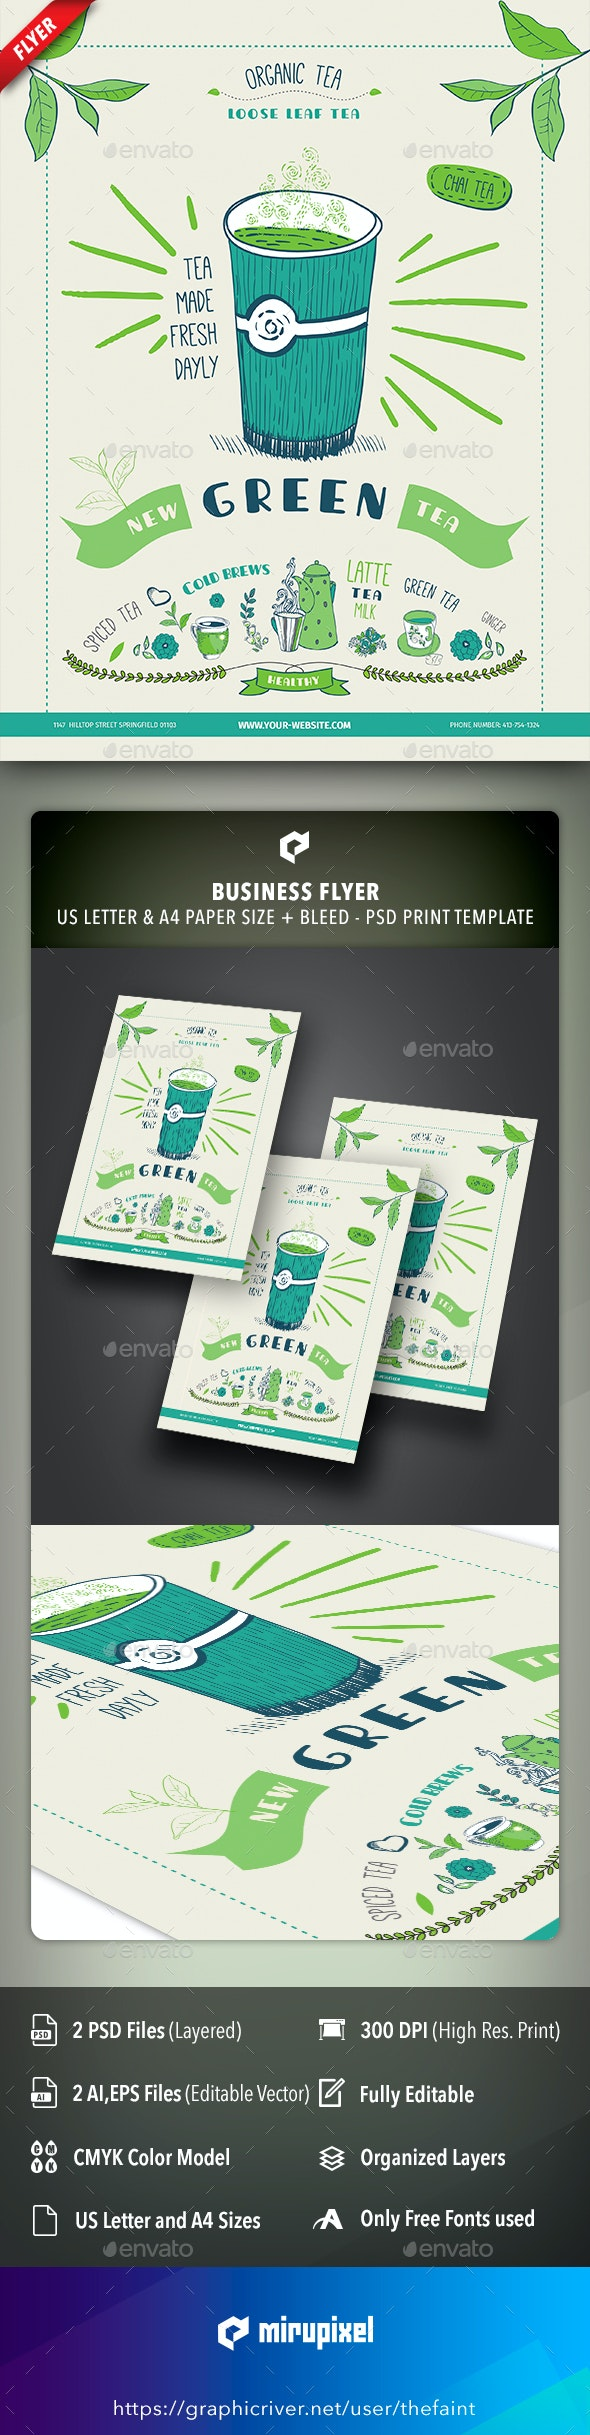 Tea Business Flyer - Commerce Flyers